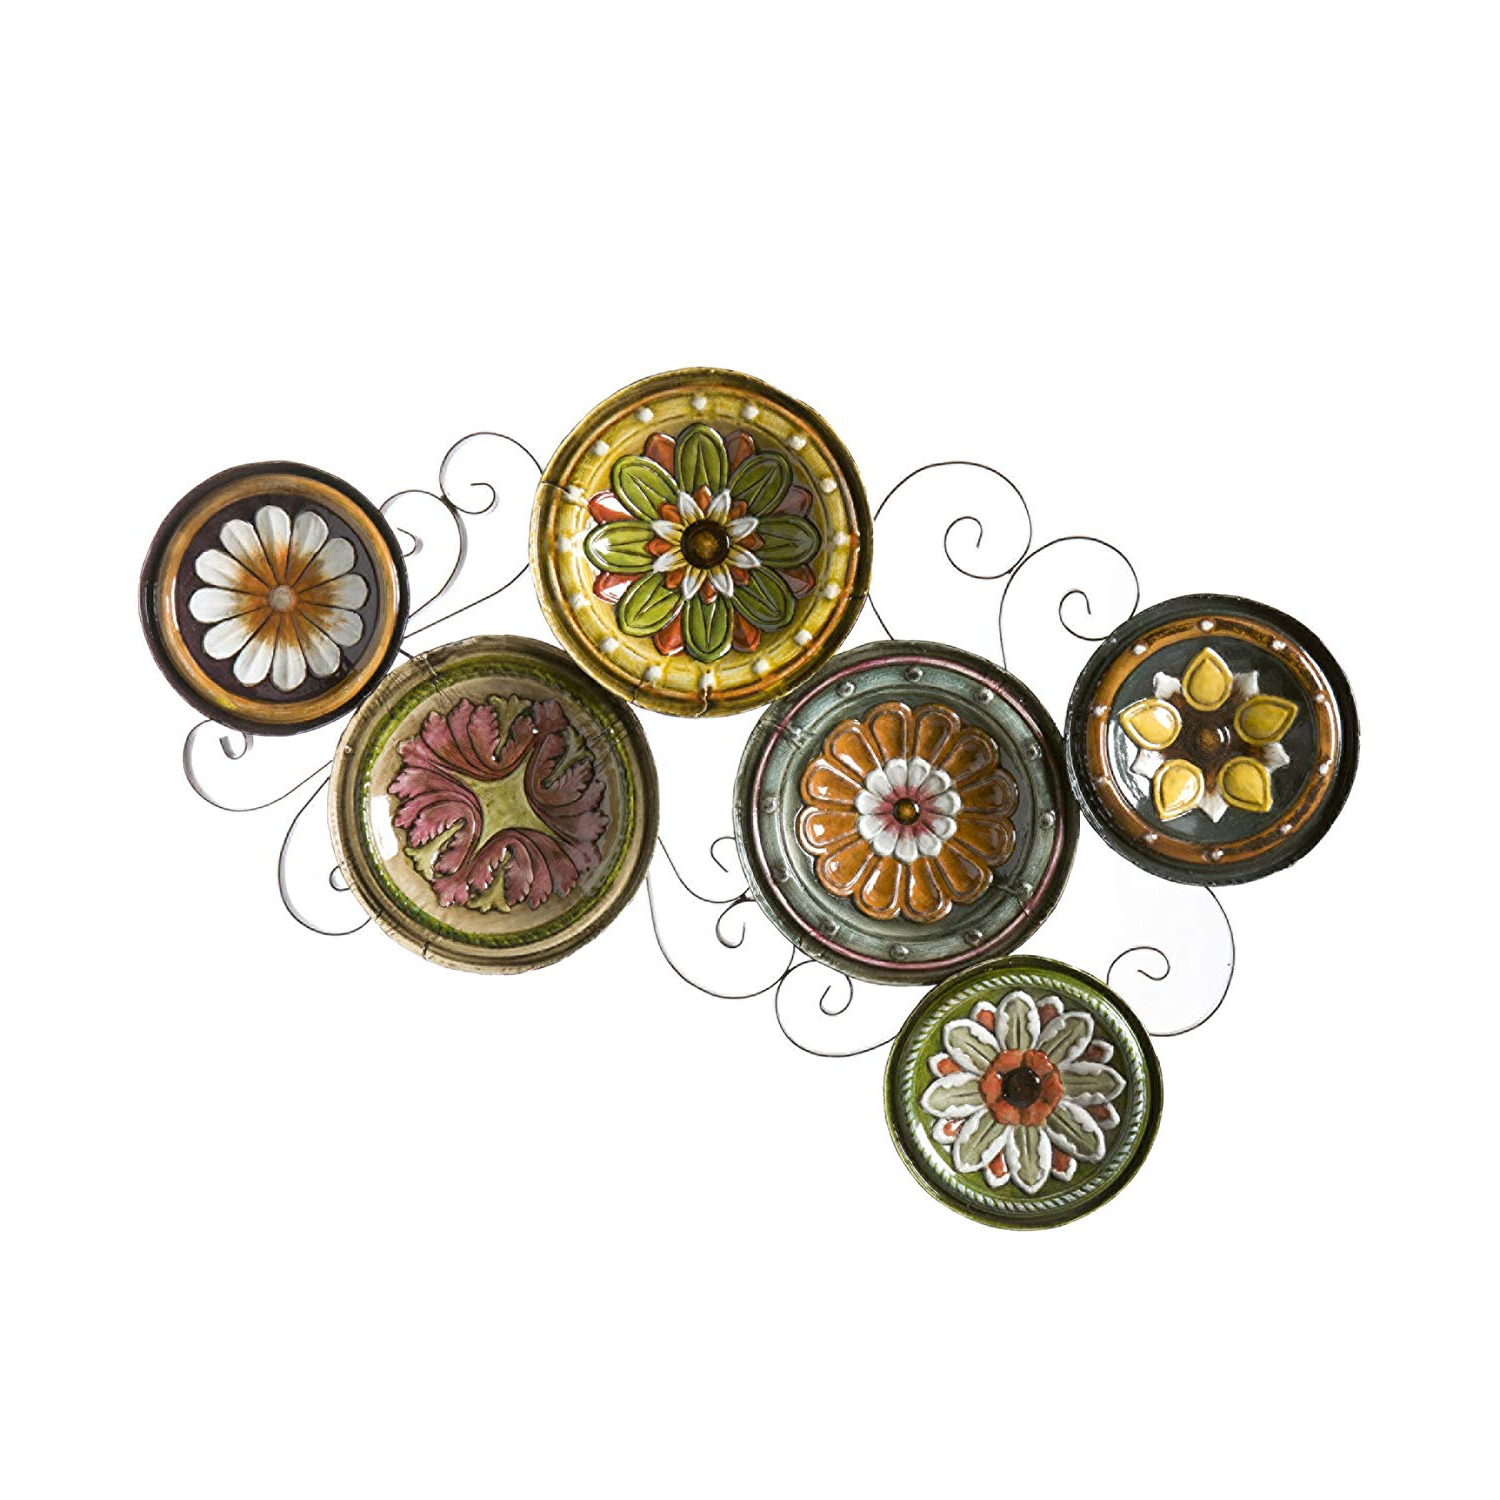 2020 Amazon: Southern Enterprises Scattered Italian Plates Wall Art In Scattered Metal Italian Plates Wall Decor (Gallery 2 of 20)